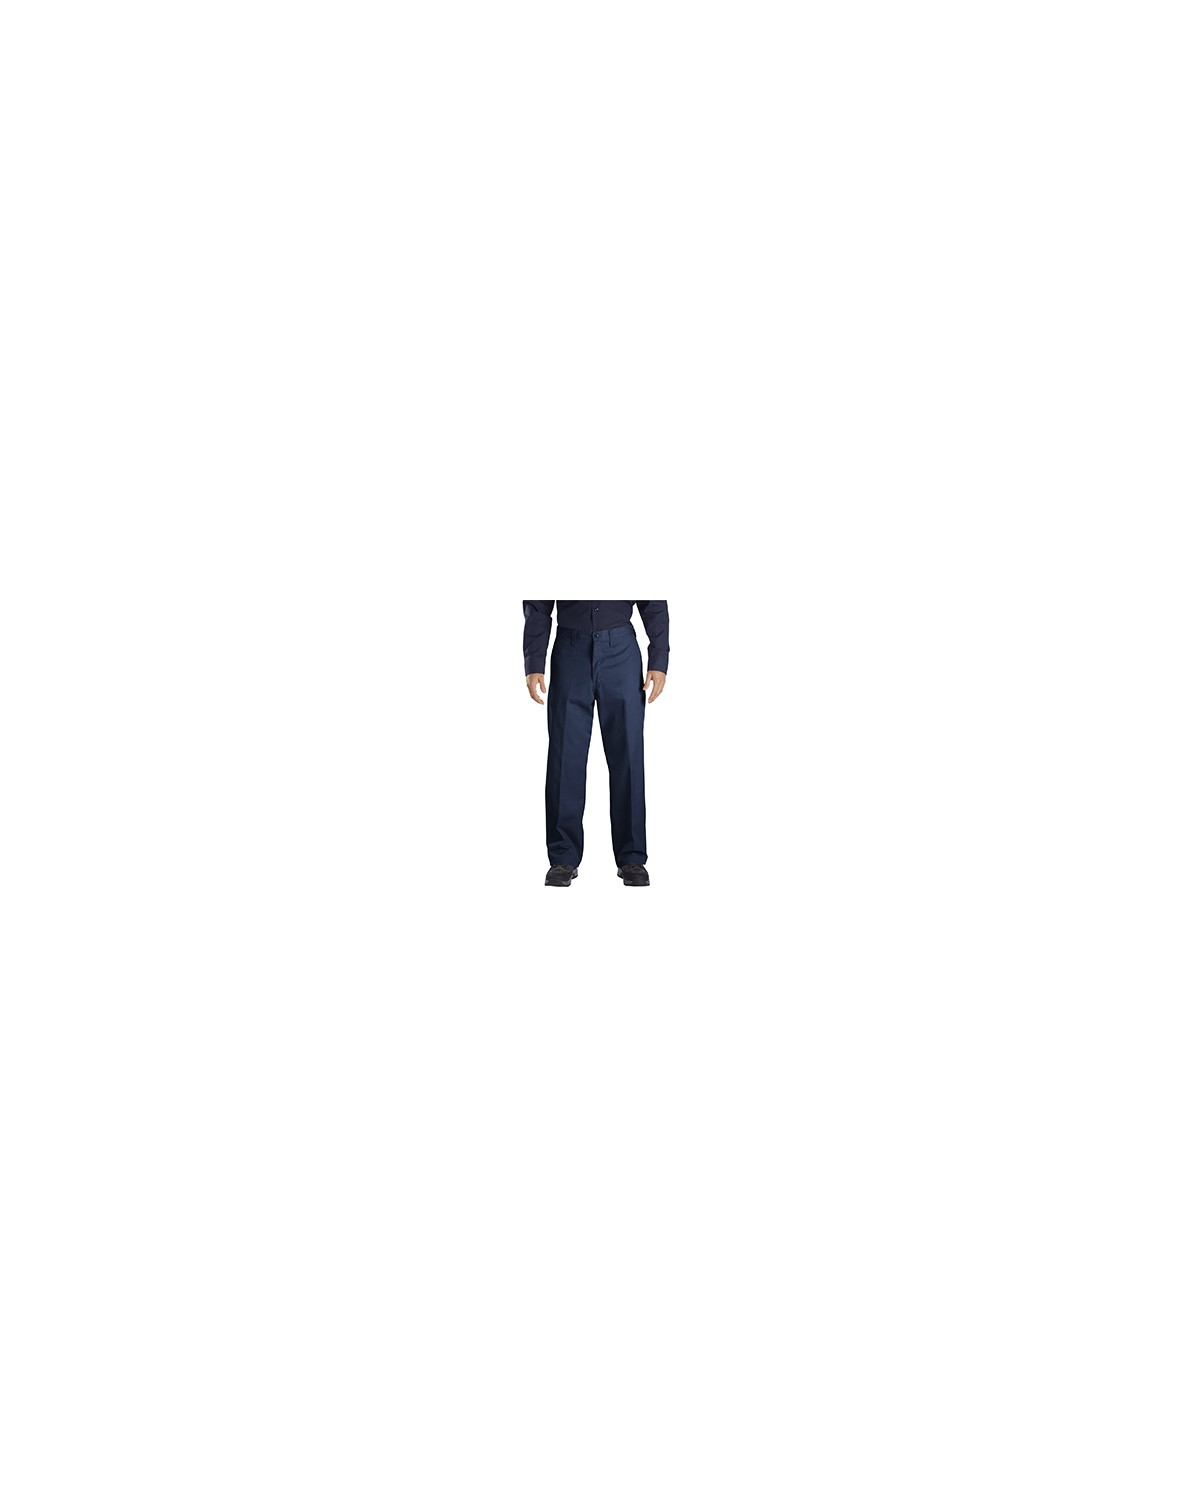 LP812 Dickies DARK NAVY 29